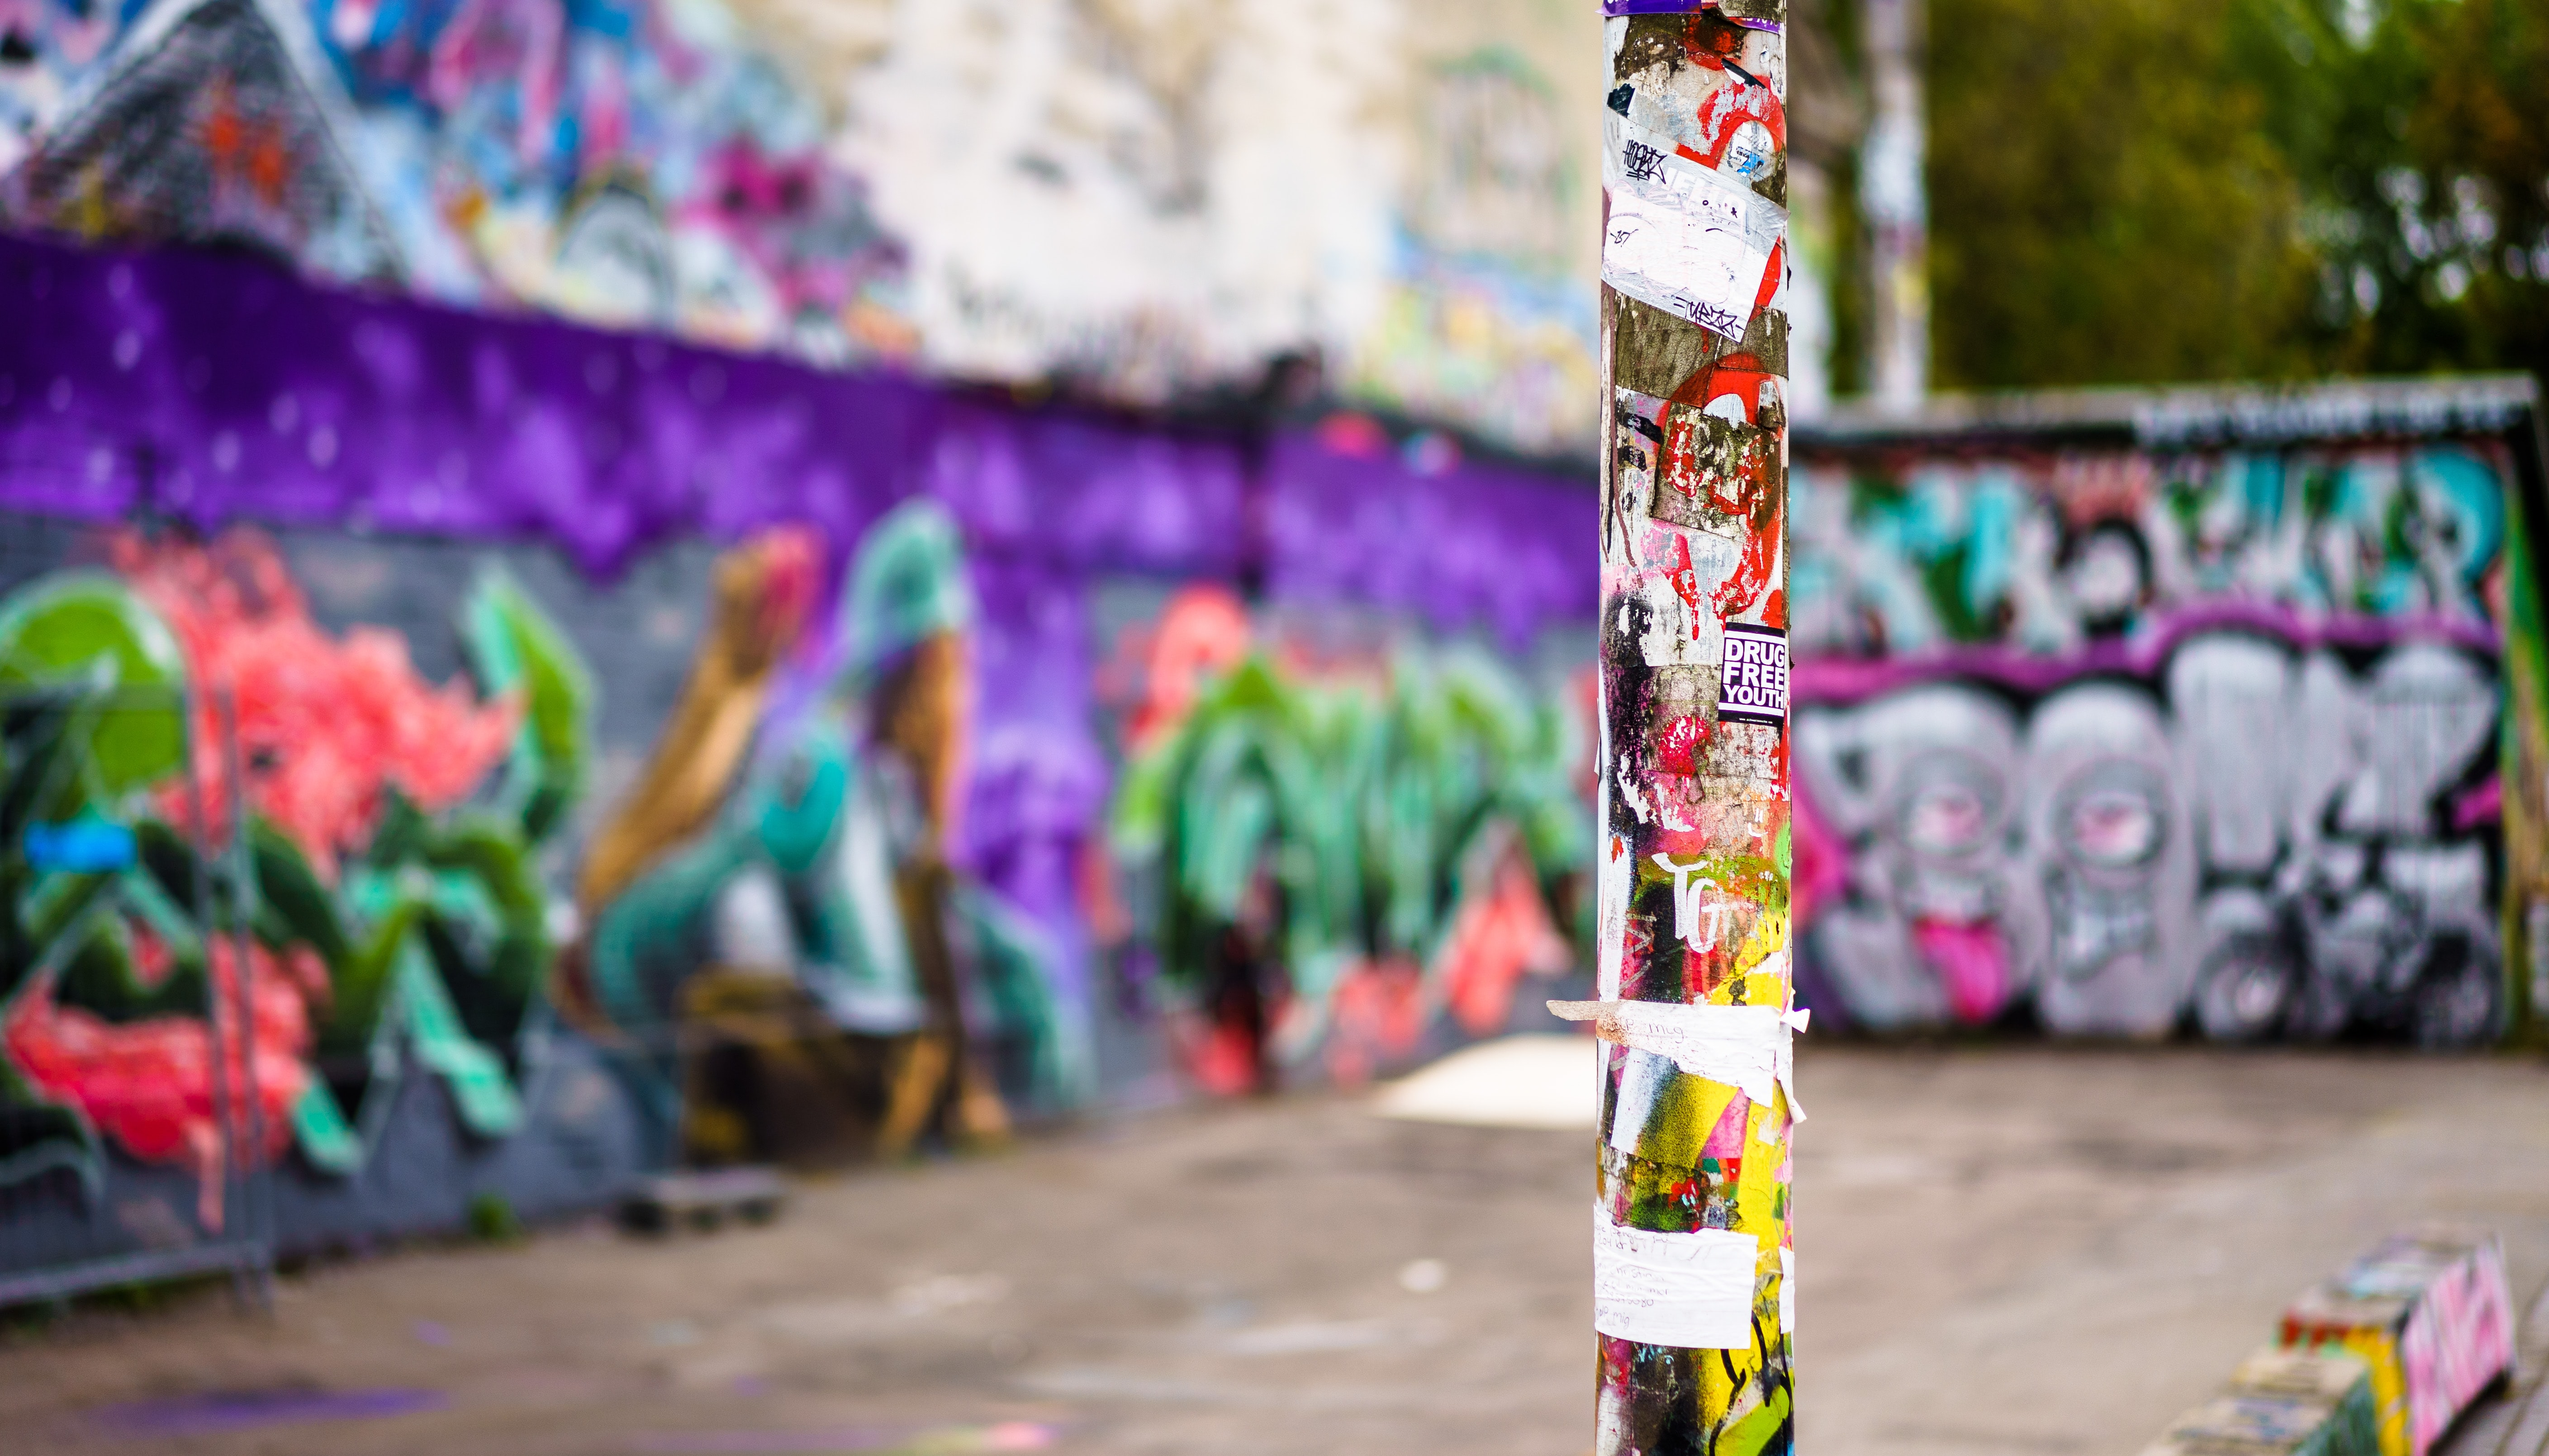 Focused pole covered in graffiti and stickers in Freetown Christiania with colorful background graffiti